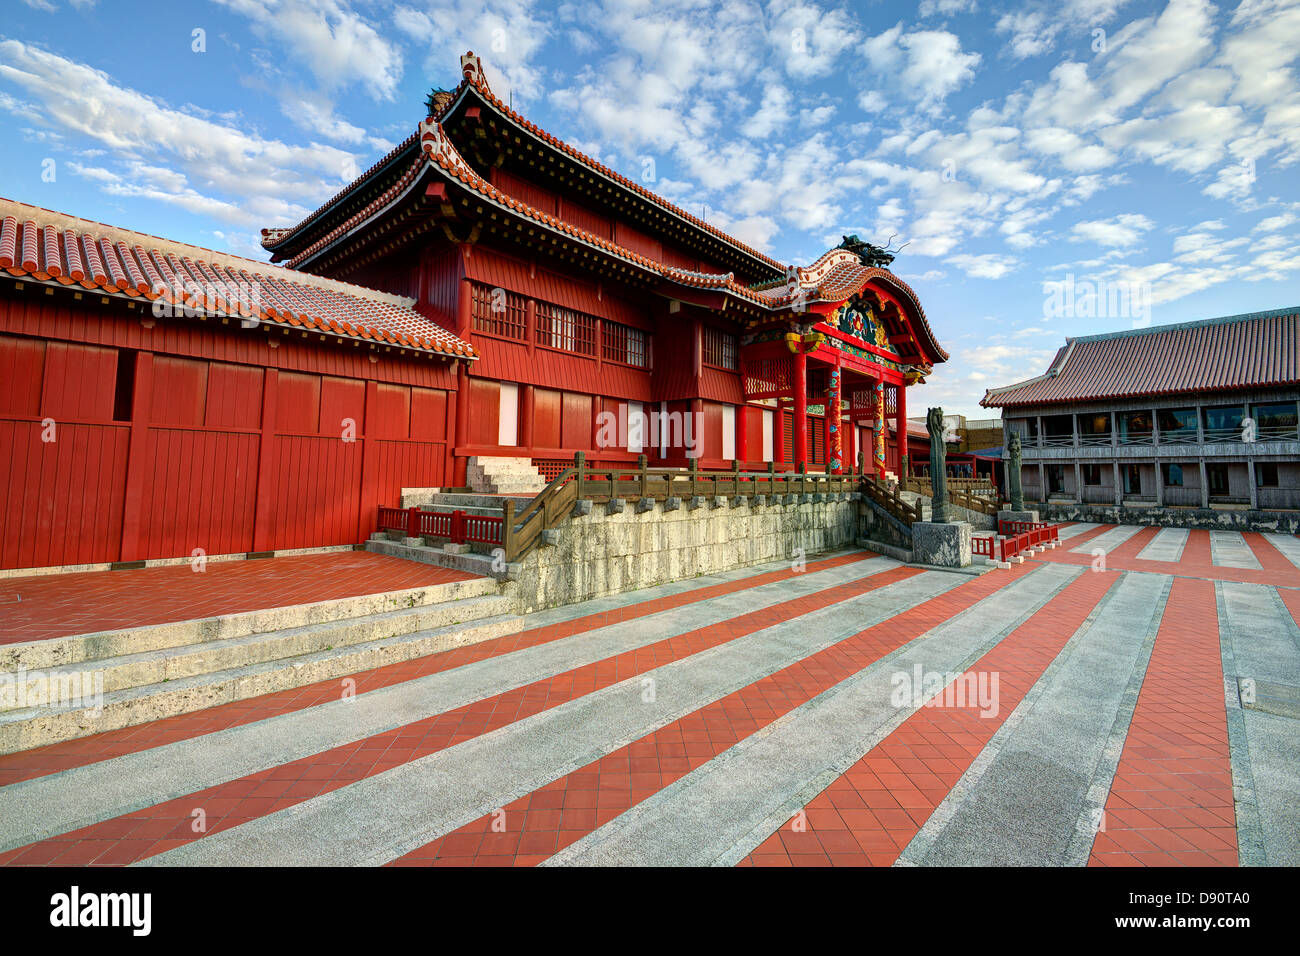 Shuri Castle in Okinawa, Japan. - Stock Image